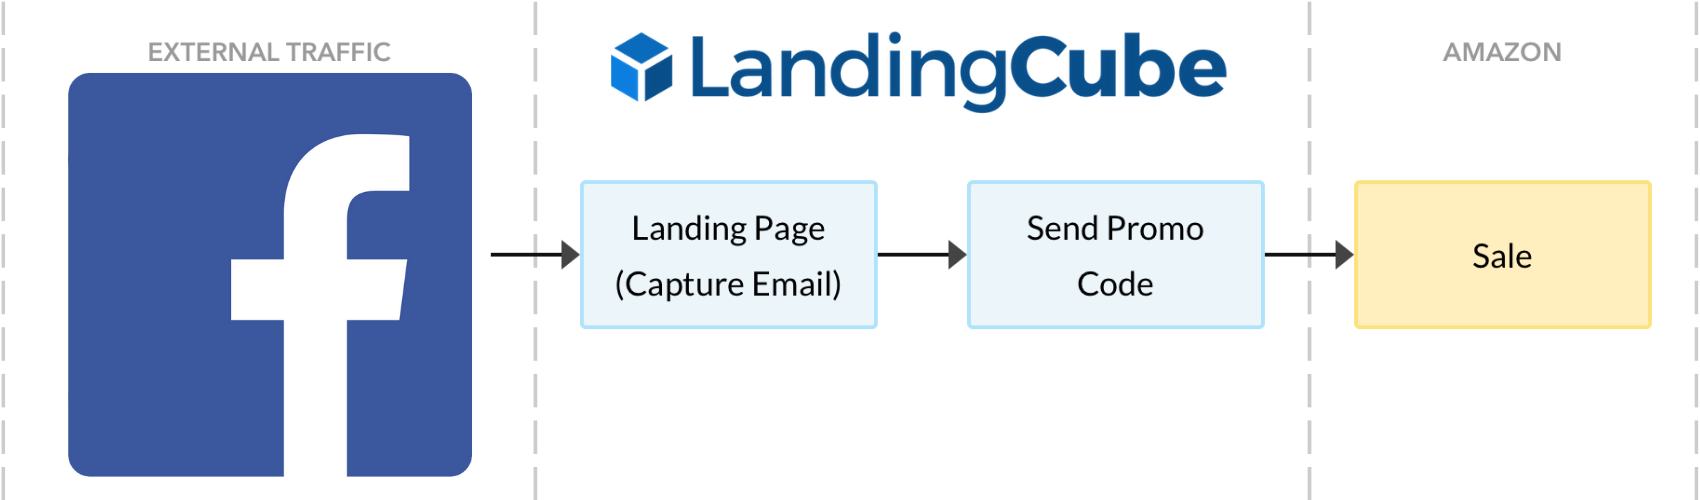 Landing page sales funnel from Facebook to sale